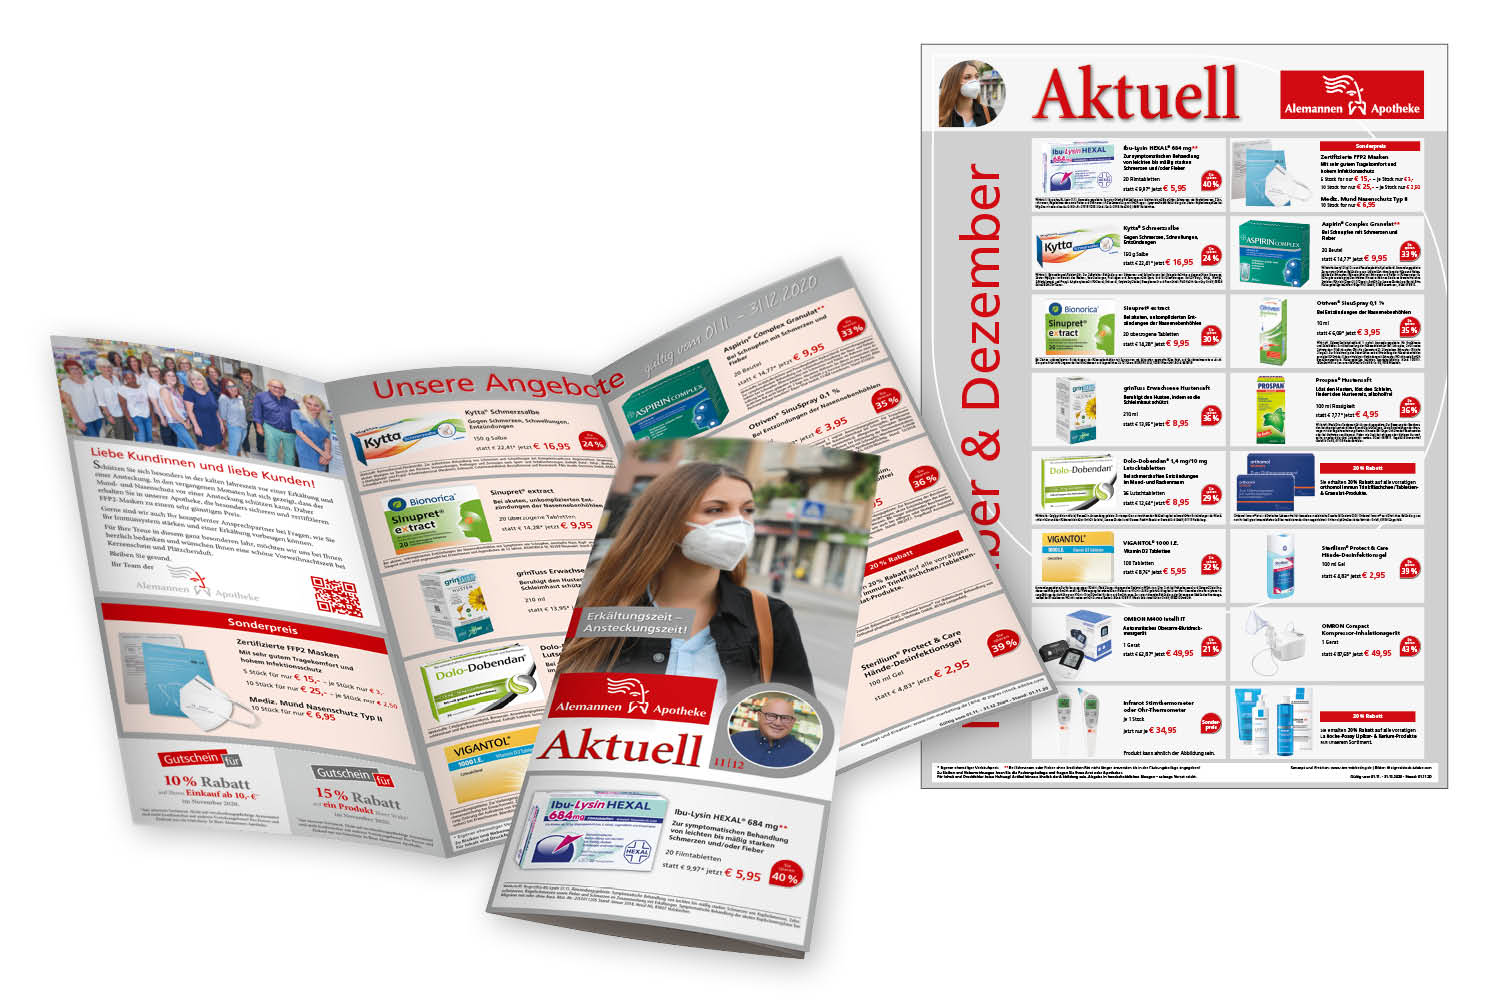 ism-marketing-alemannen-apotheke-aktuell-flyer-poster